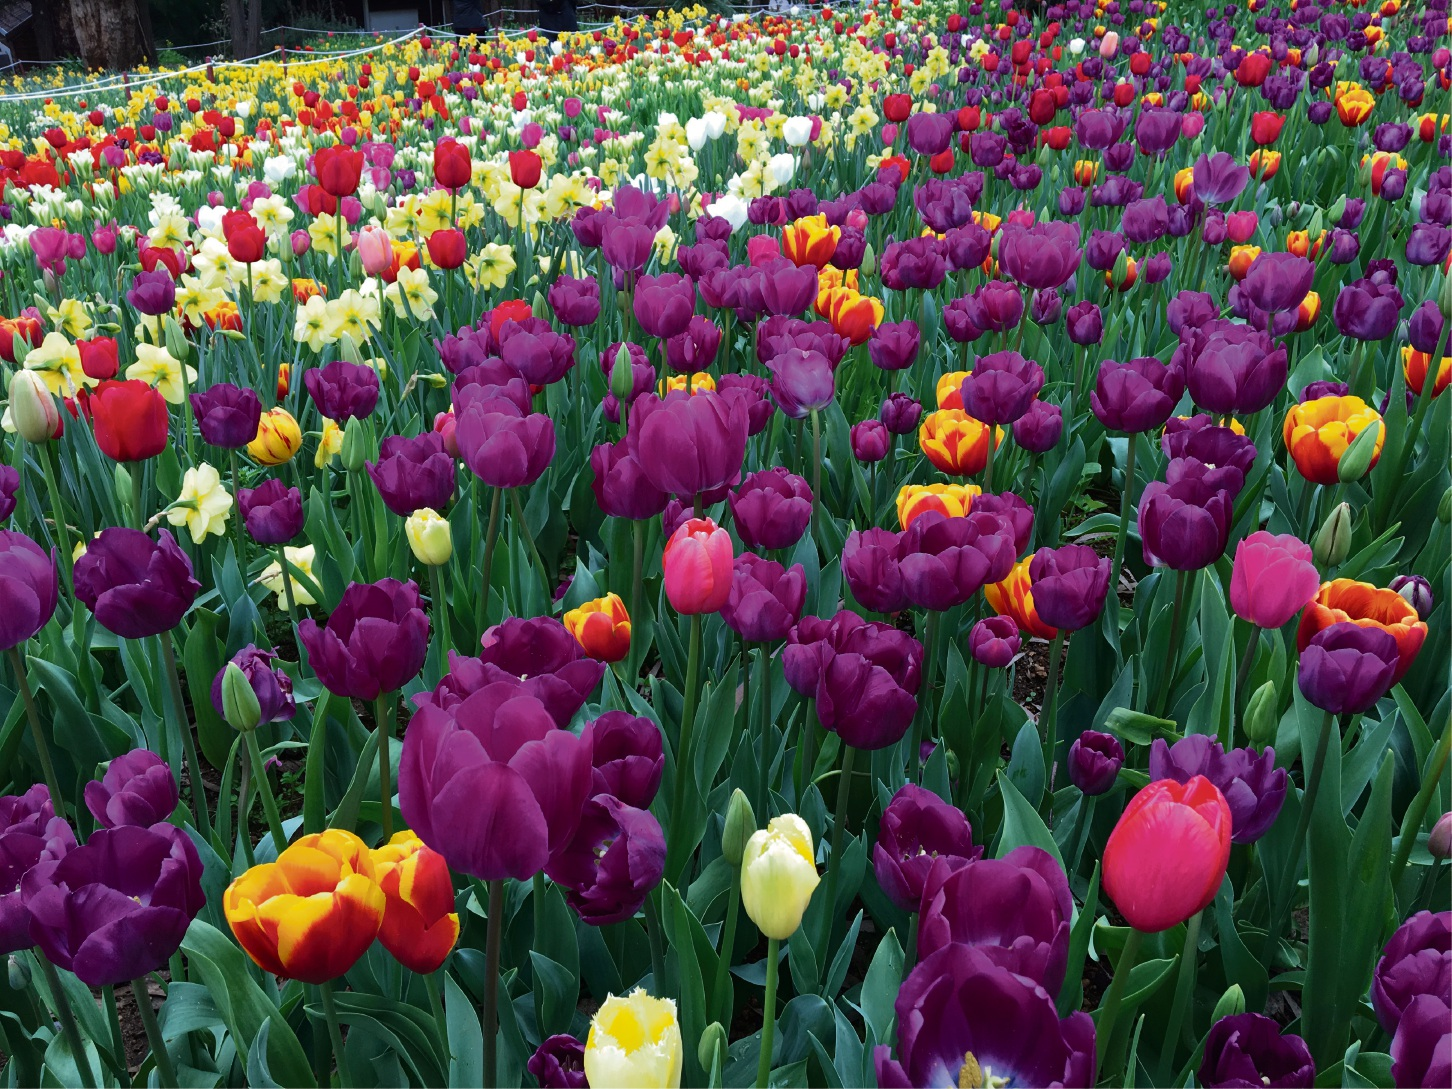 About 140,000 tulips have been planted at Araluen Botanic Park in preparation for It's Yates Springtime.